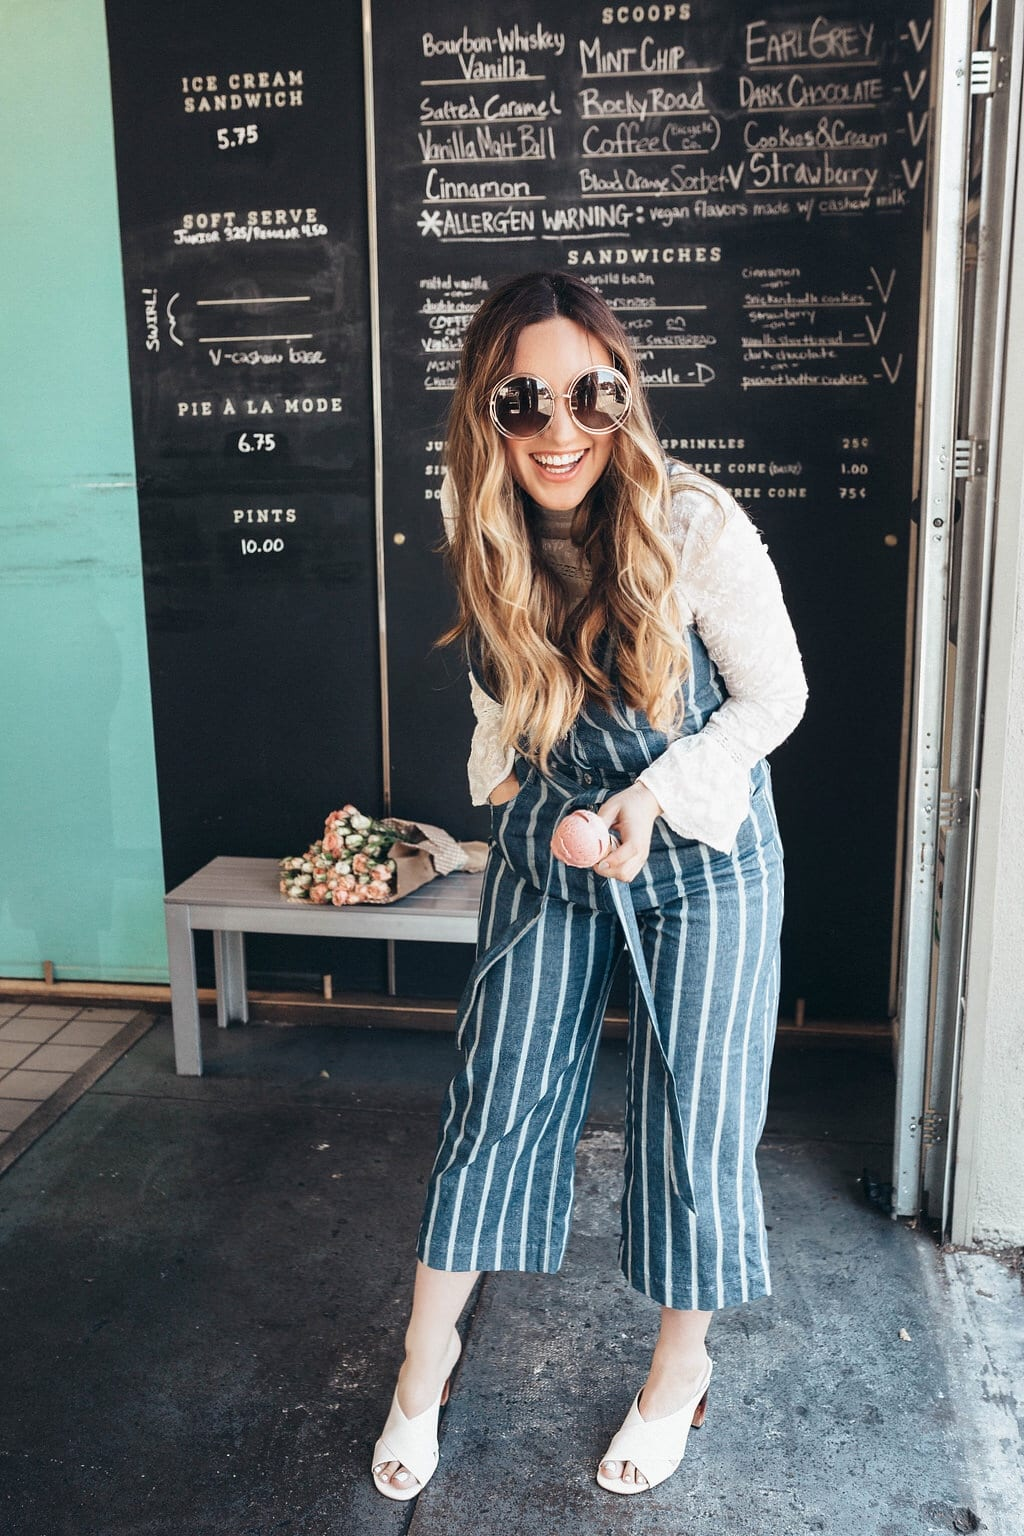 FAVORITE DRUGSTORE AFTER SUN SKIN CARE featured by popular San Francisco beauty blogger, Just Add Glam